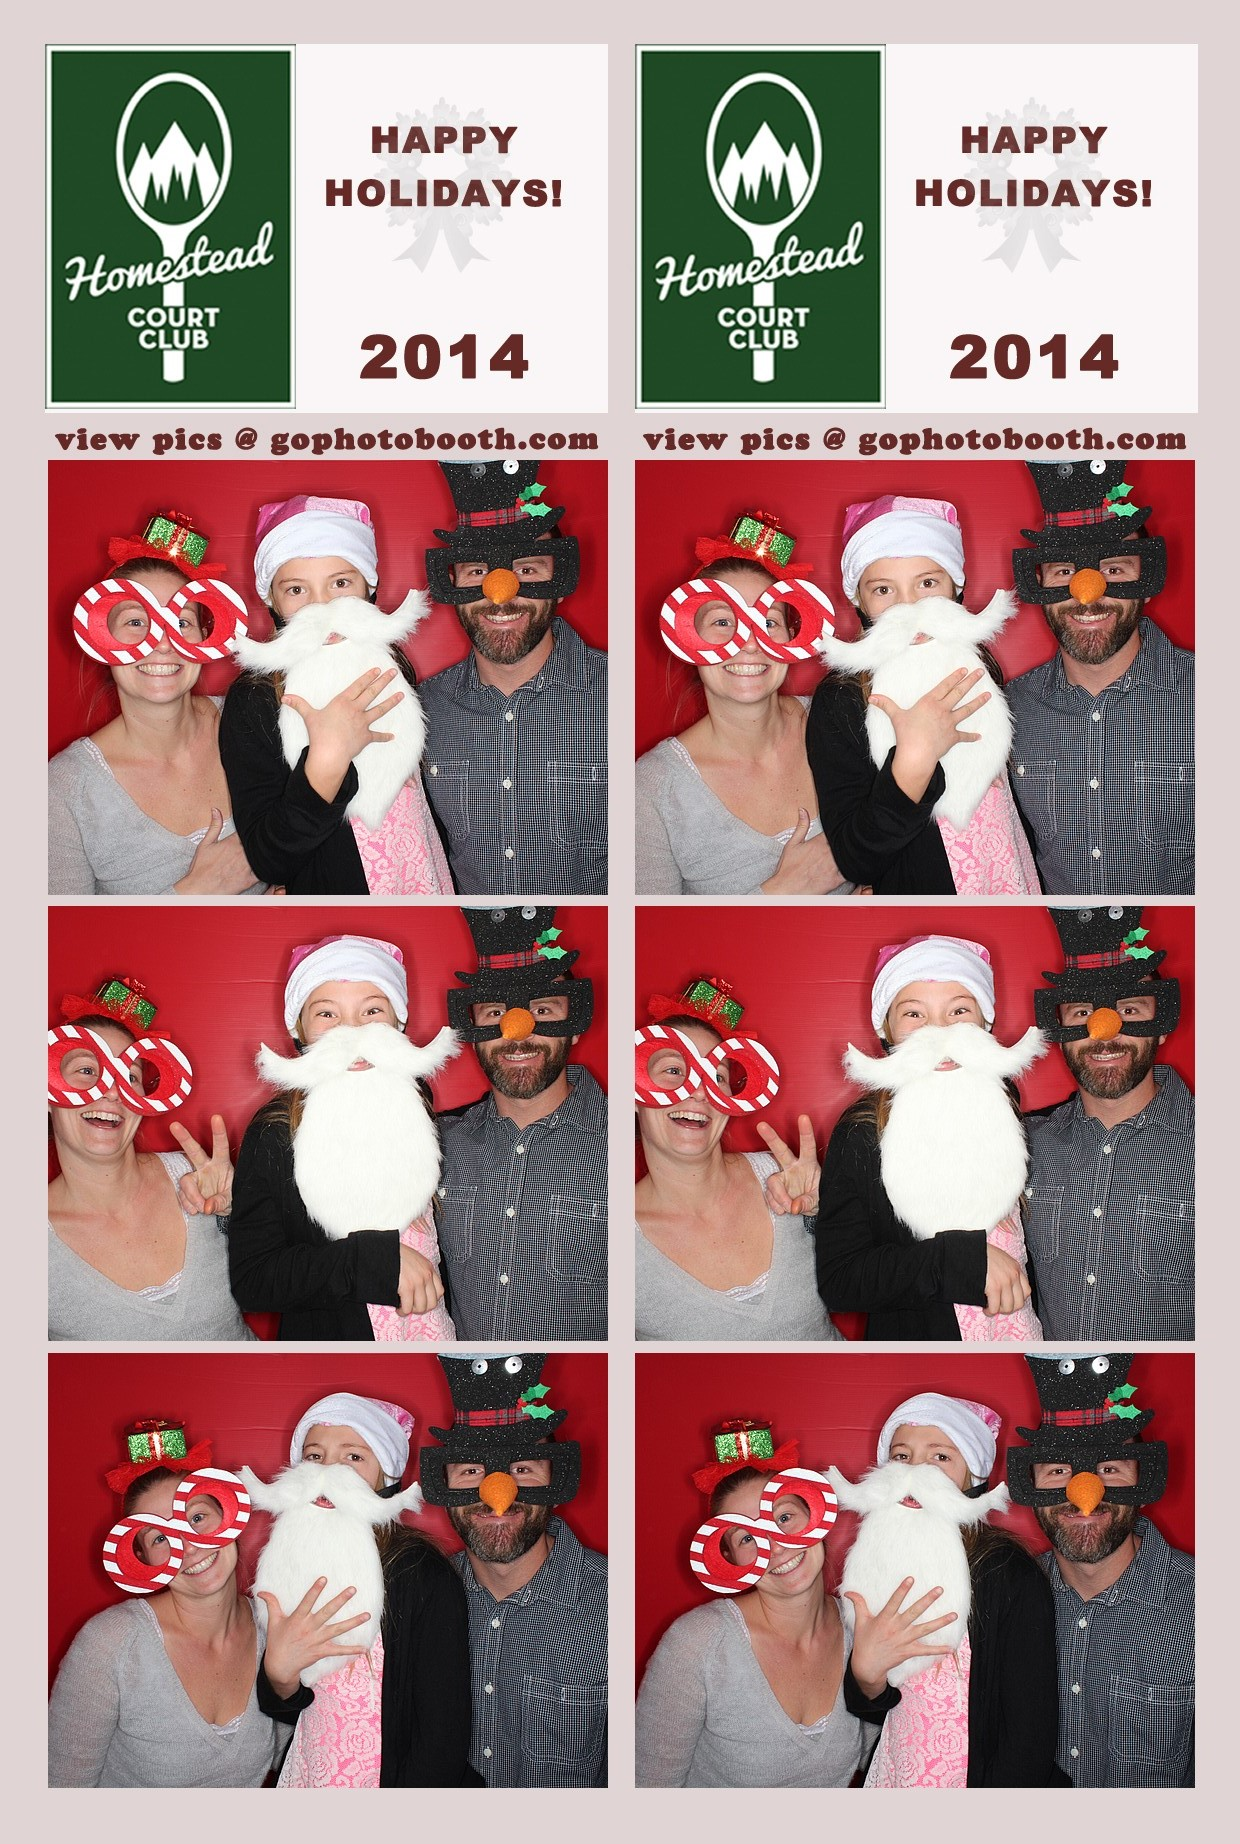 Homestead Holiday Party, Edwards CO 12/07/14